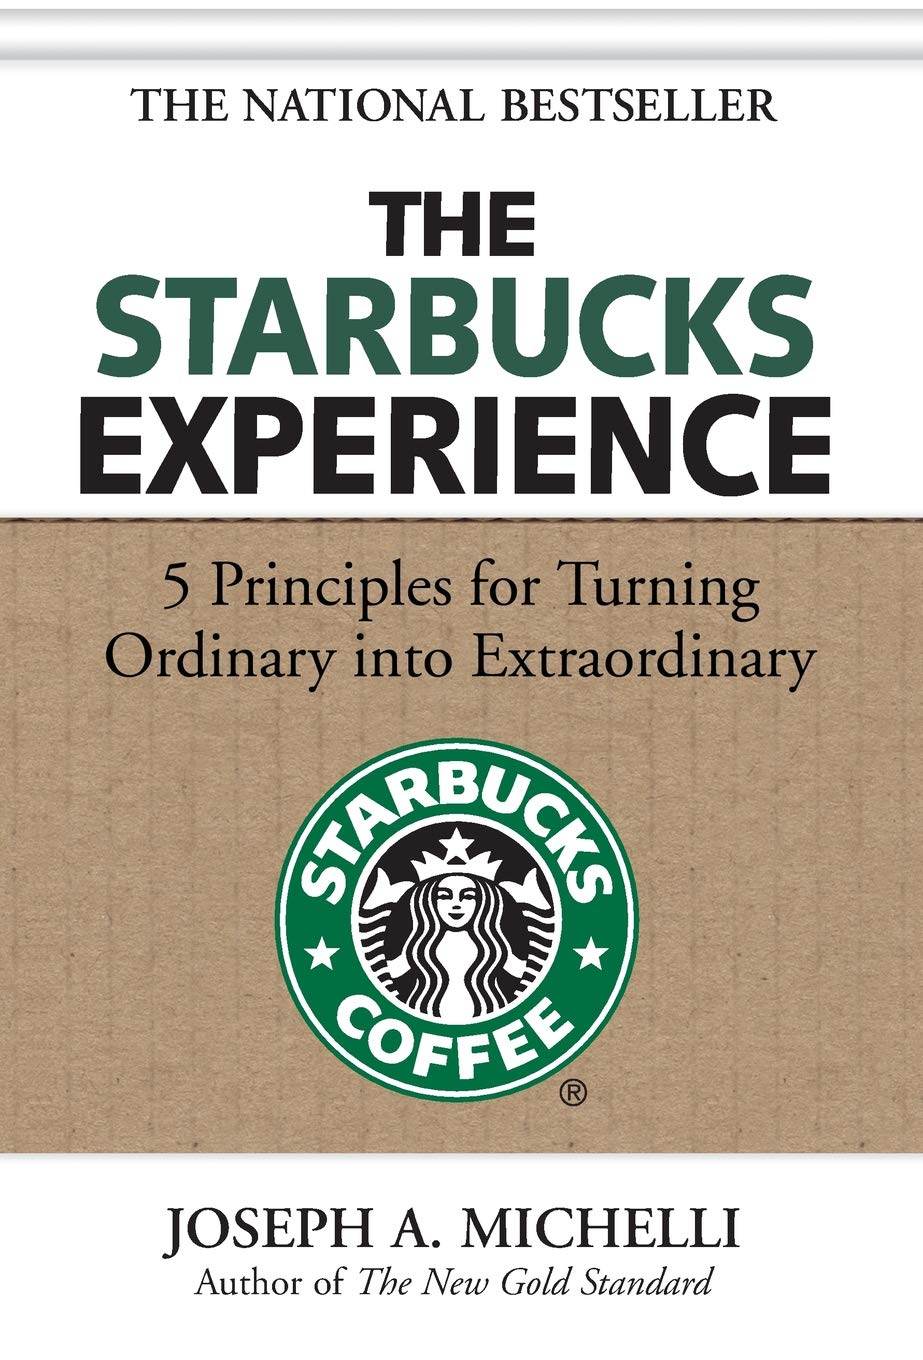 introduction of starbucks